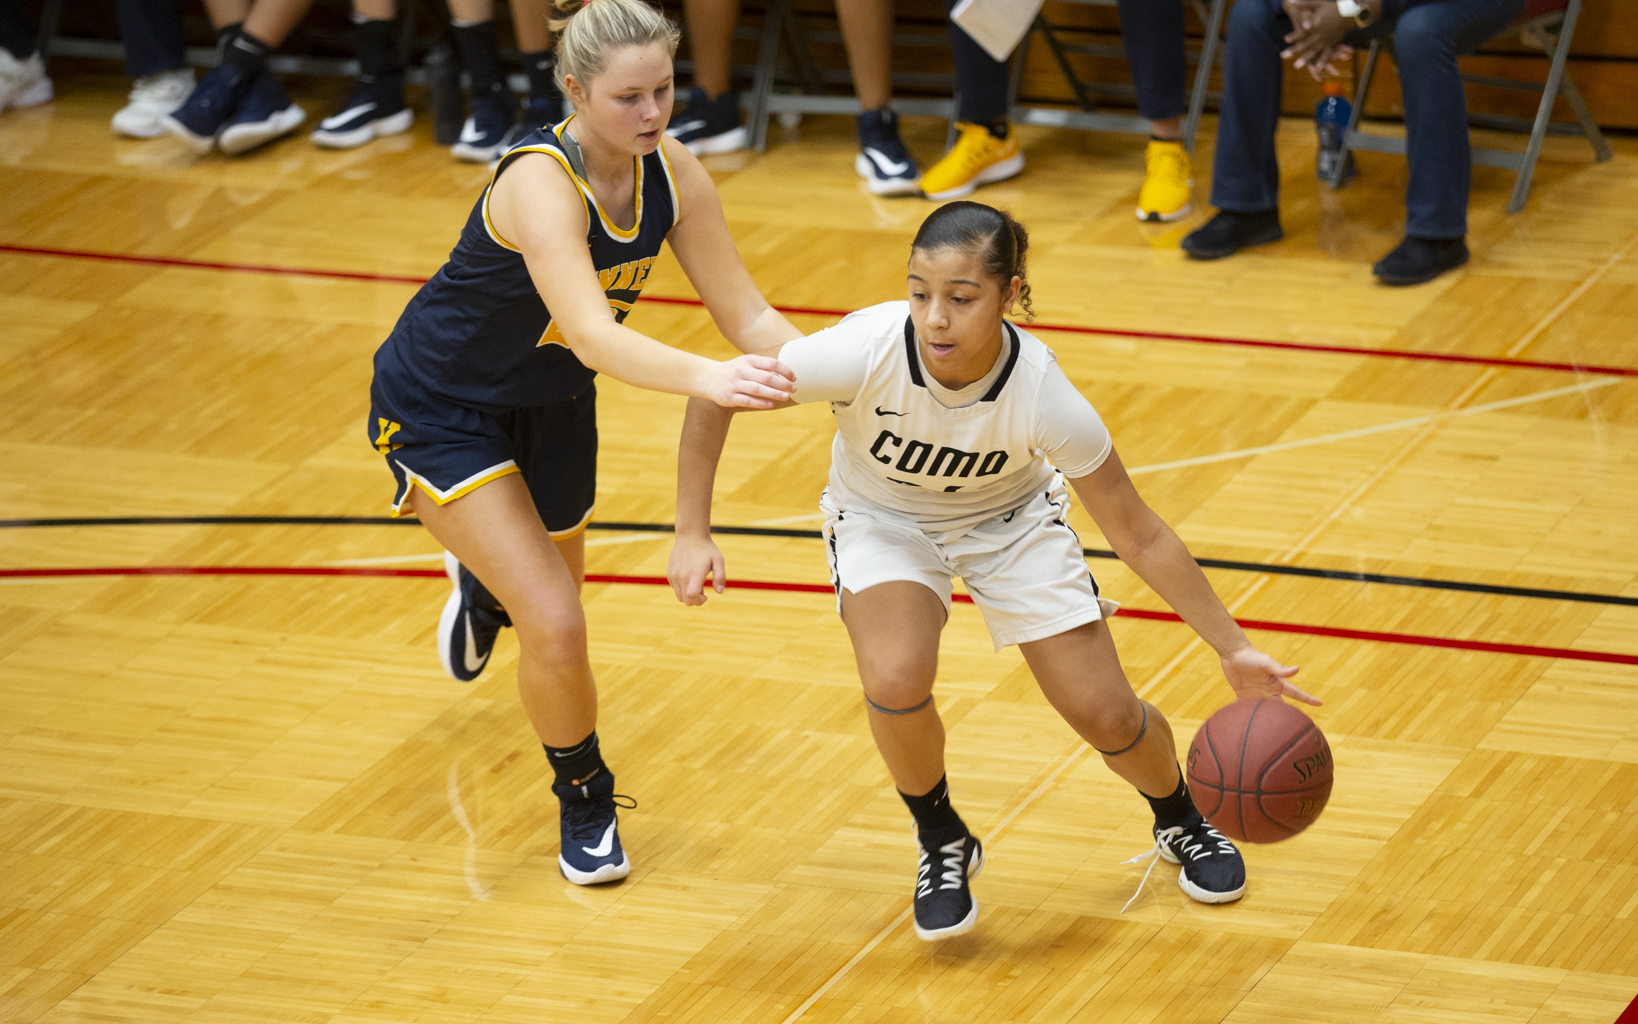 St. Paul Como Park's Kaylynn Asberry (24) drives the baseline around Bloomington Kennedy's Kali Kopka (25) Saturday afternoon at Hamline University.  The Cougars defeated the Eagles 80-40. Photo by Jeff Lawler, SportsEngine